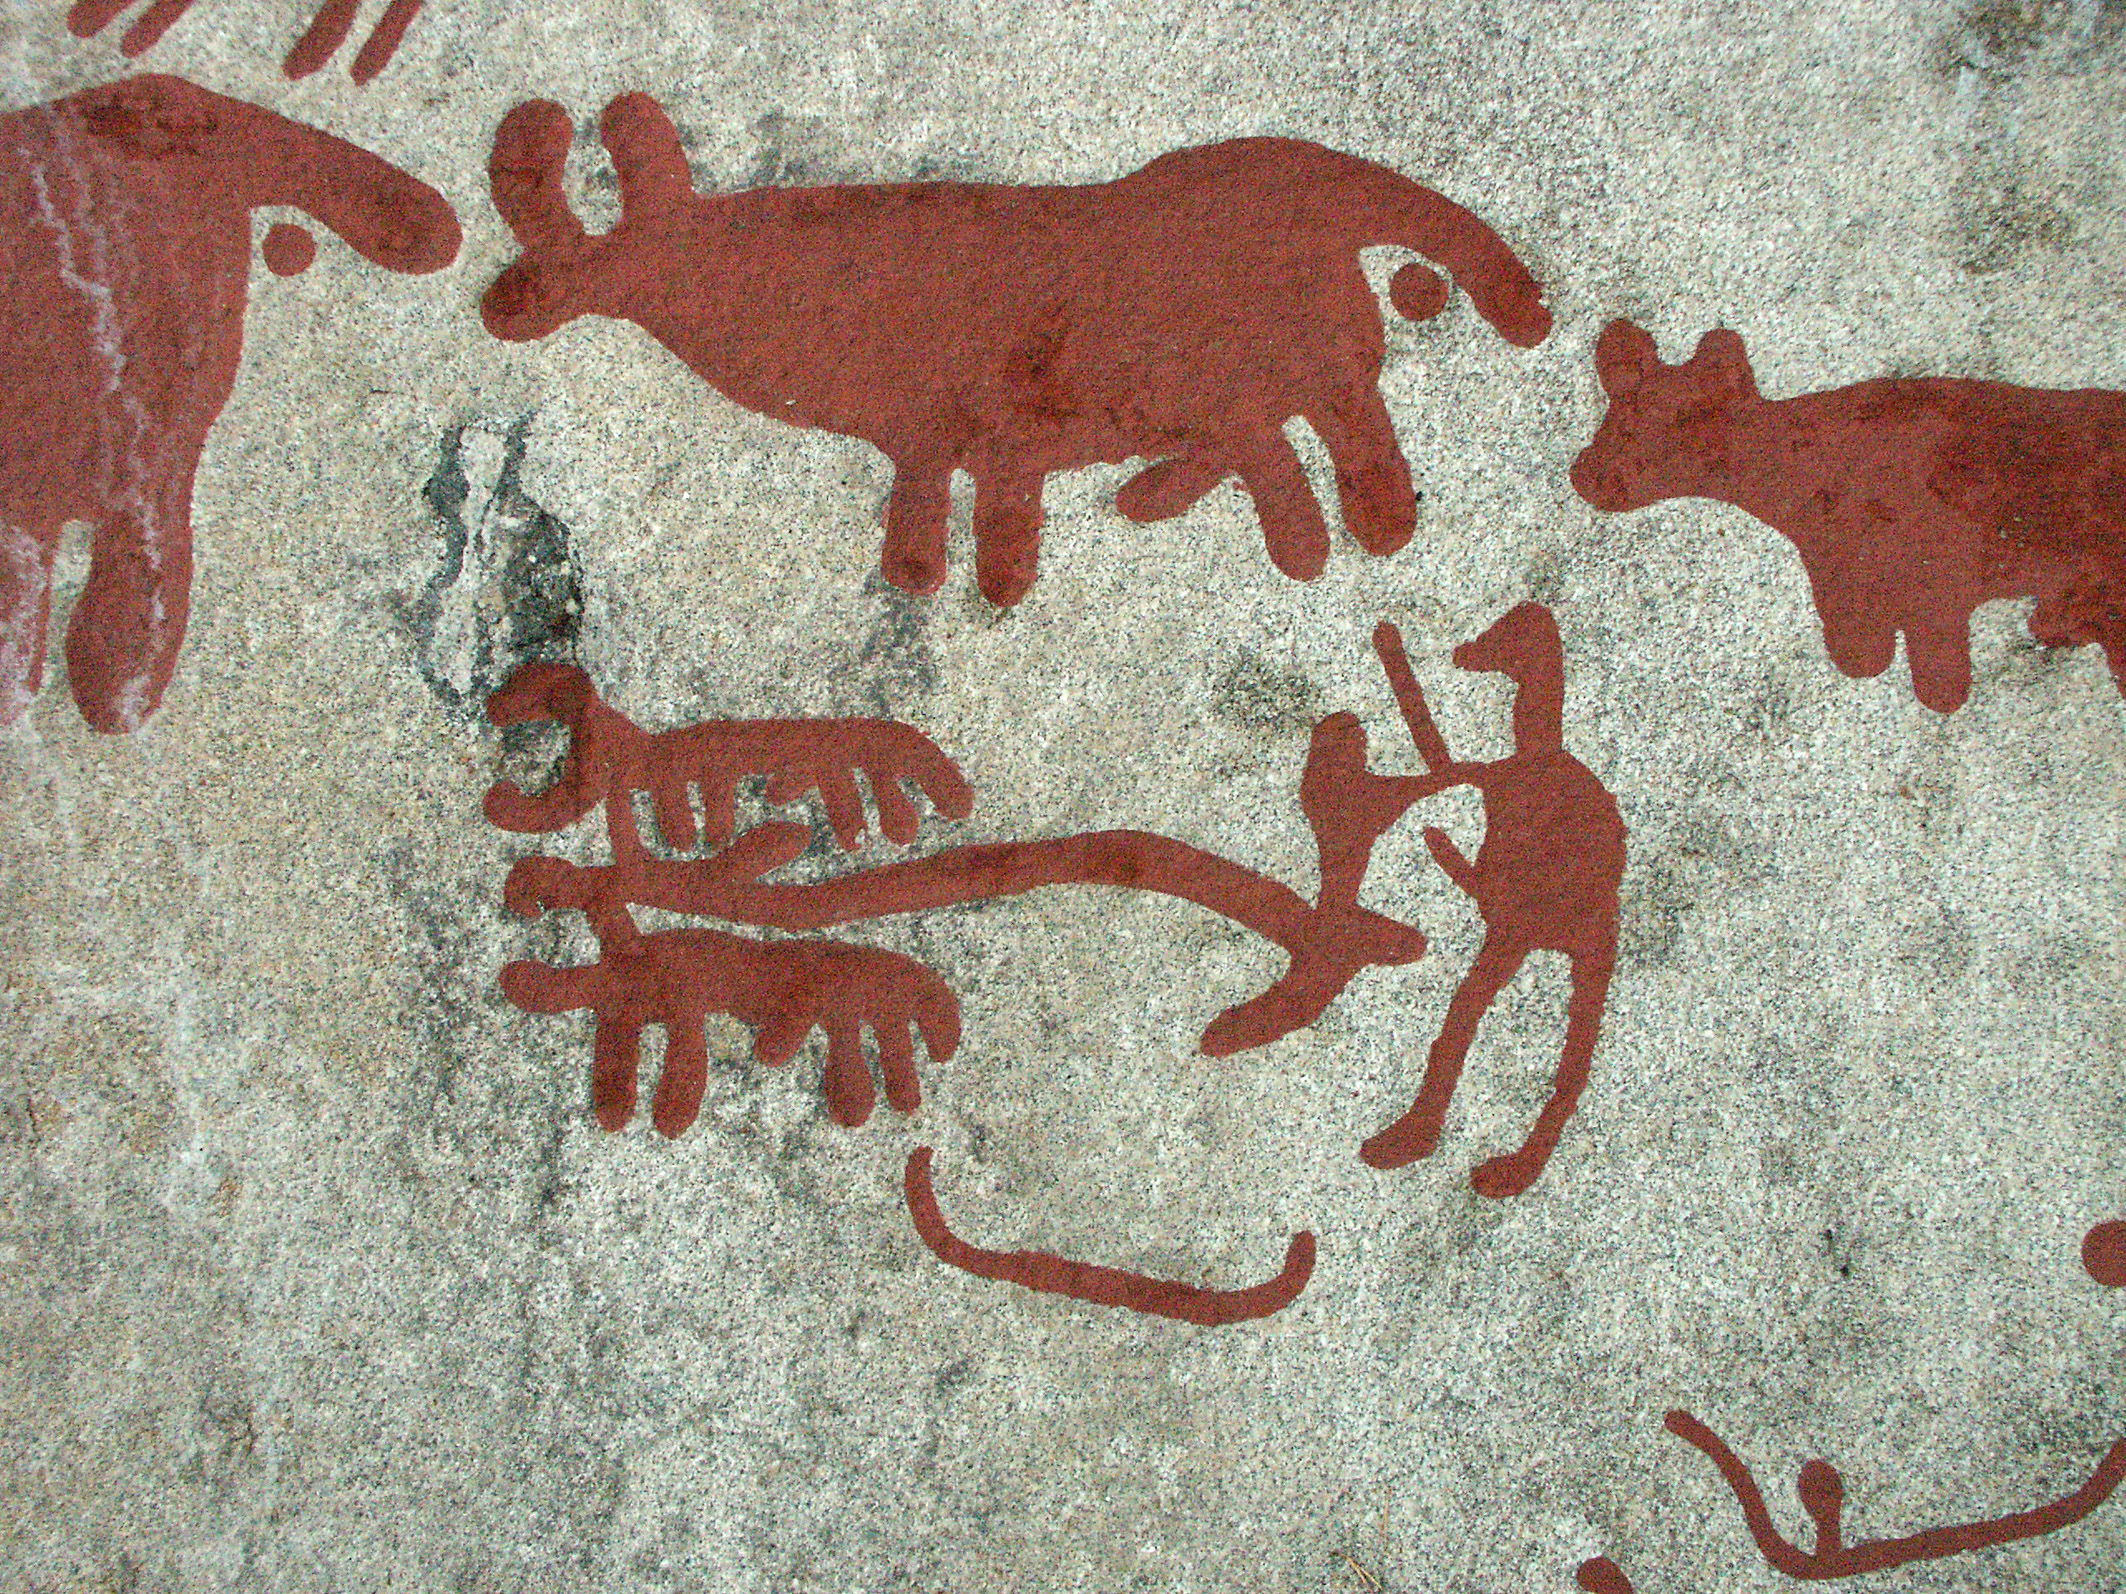 http://upload.wikimedia.org/wikipedia/commons/3/35/Aspberget_rock_carving_Sweden_6.jpg